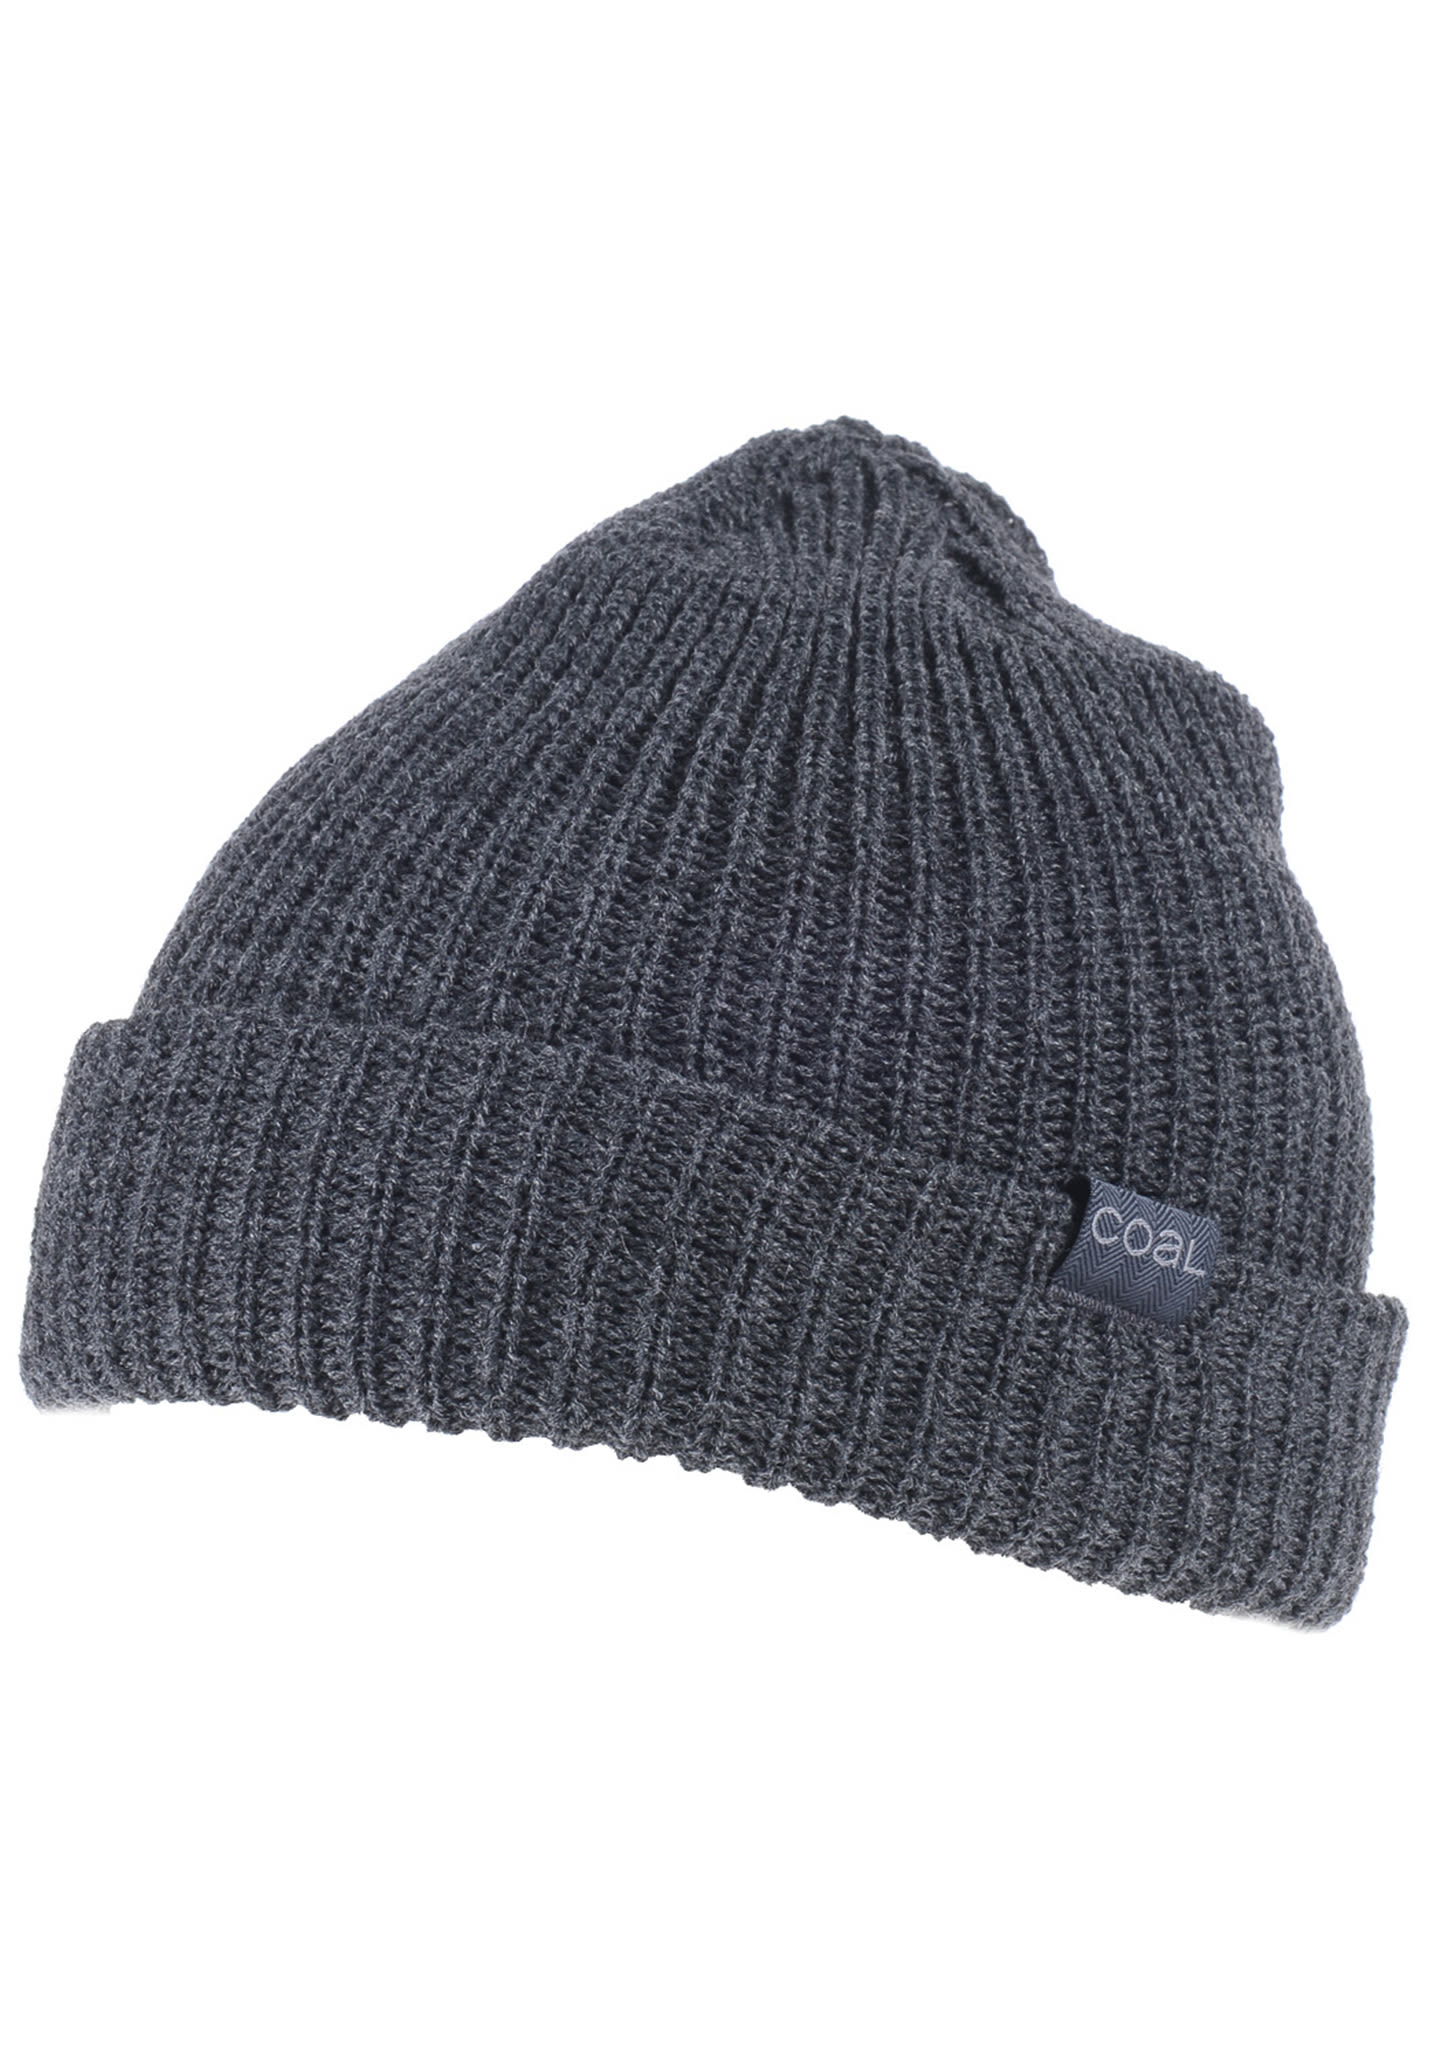 852740c5bef0f Coal The Stanley - Beanie - Grey - Planet Sports